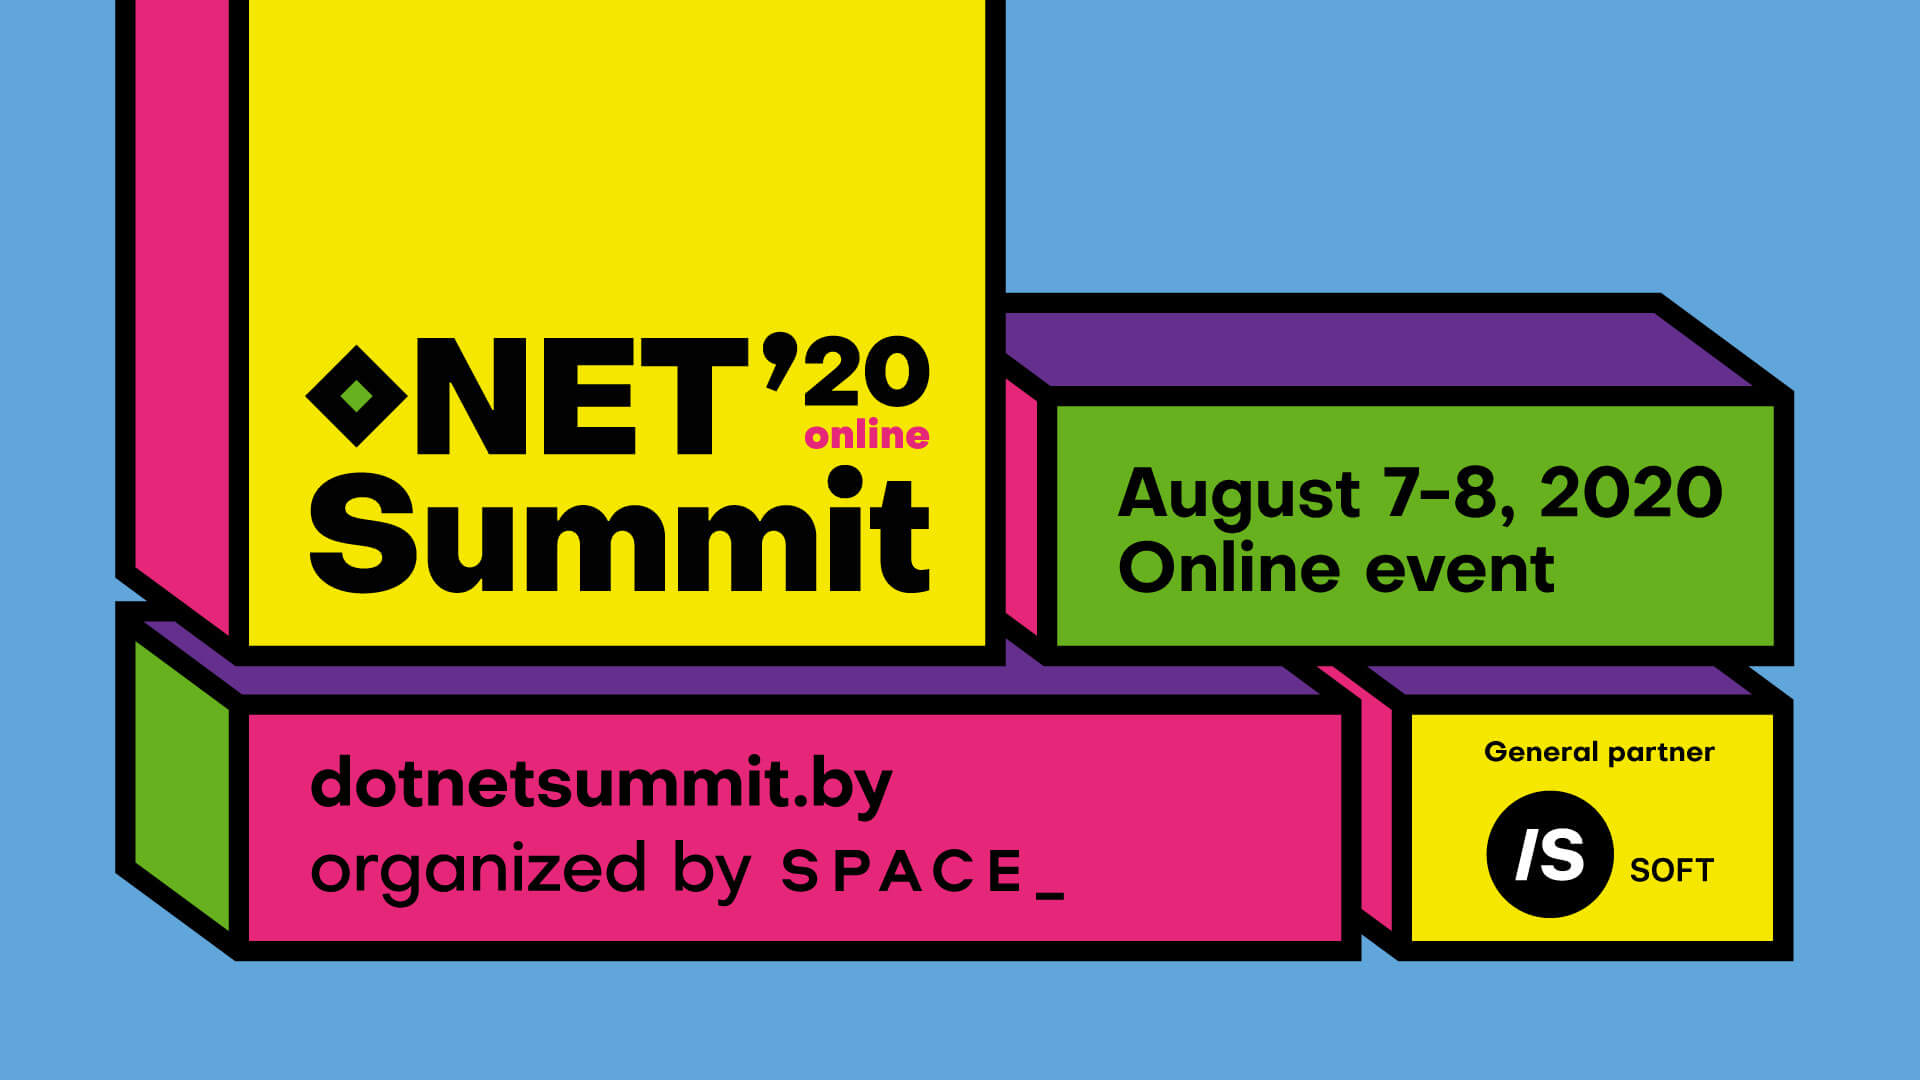 .NET Summit 2020 logo